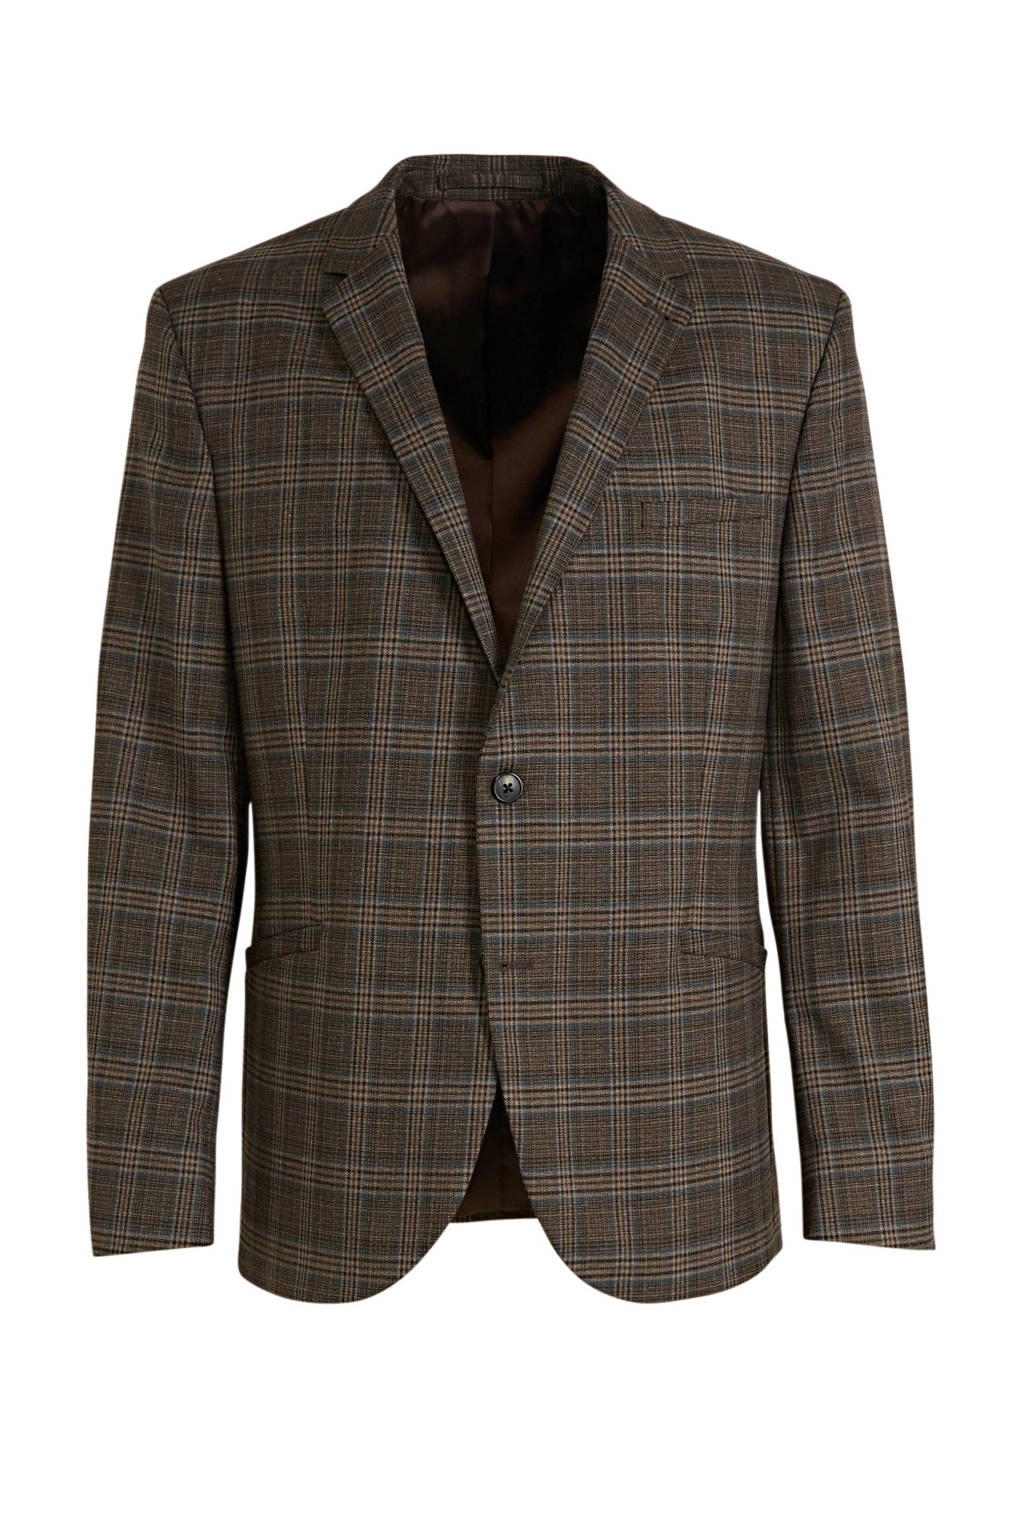 C&A Angelo Litrico geruit slim fit colbert donkerbruin, Donkerbruin